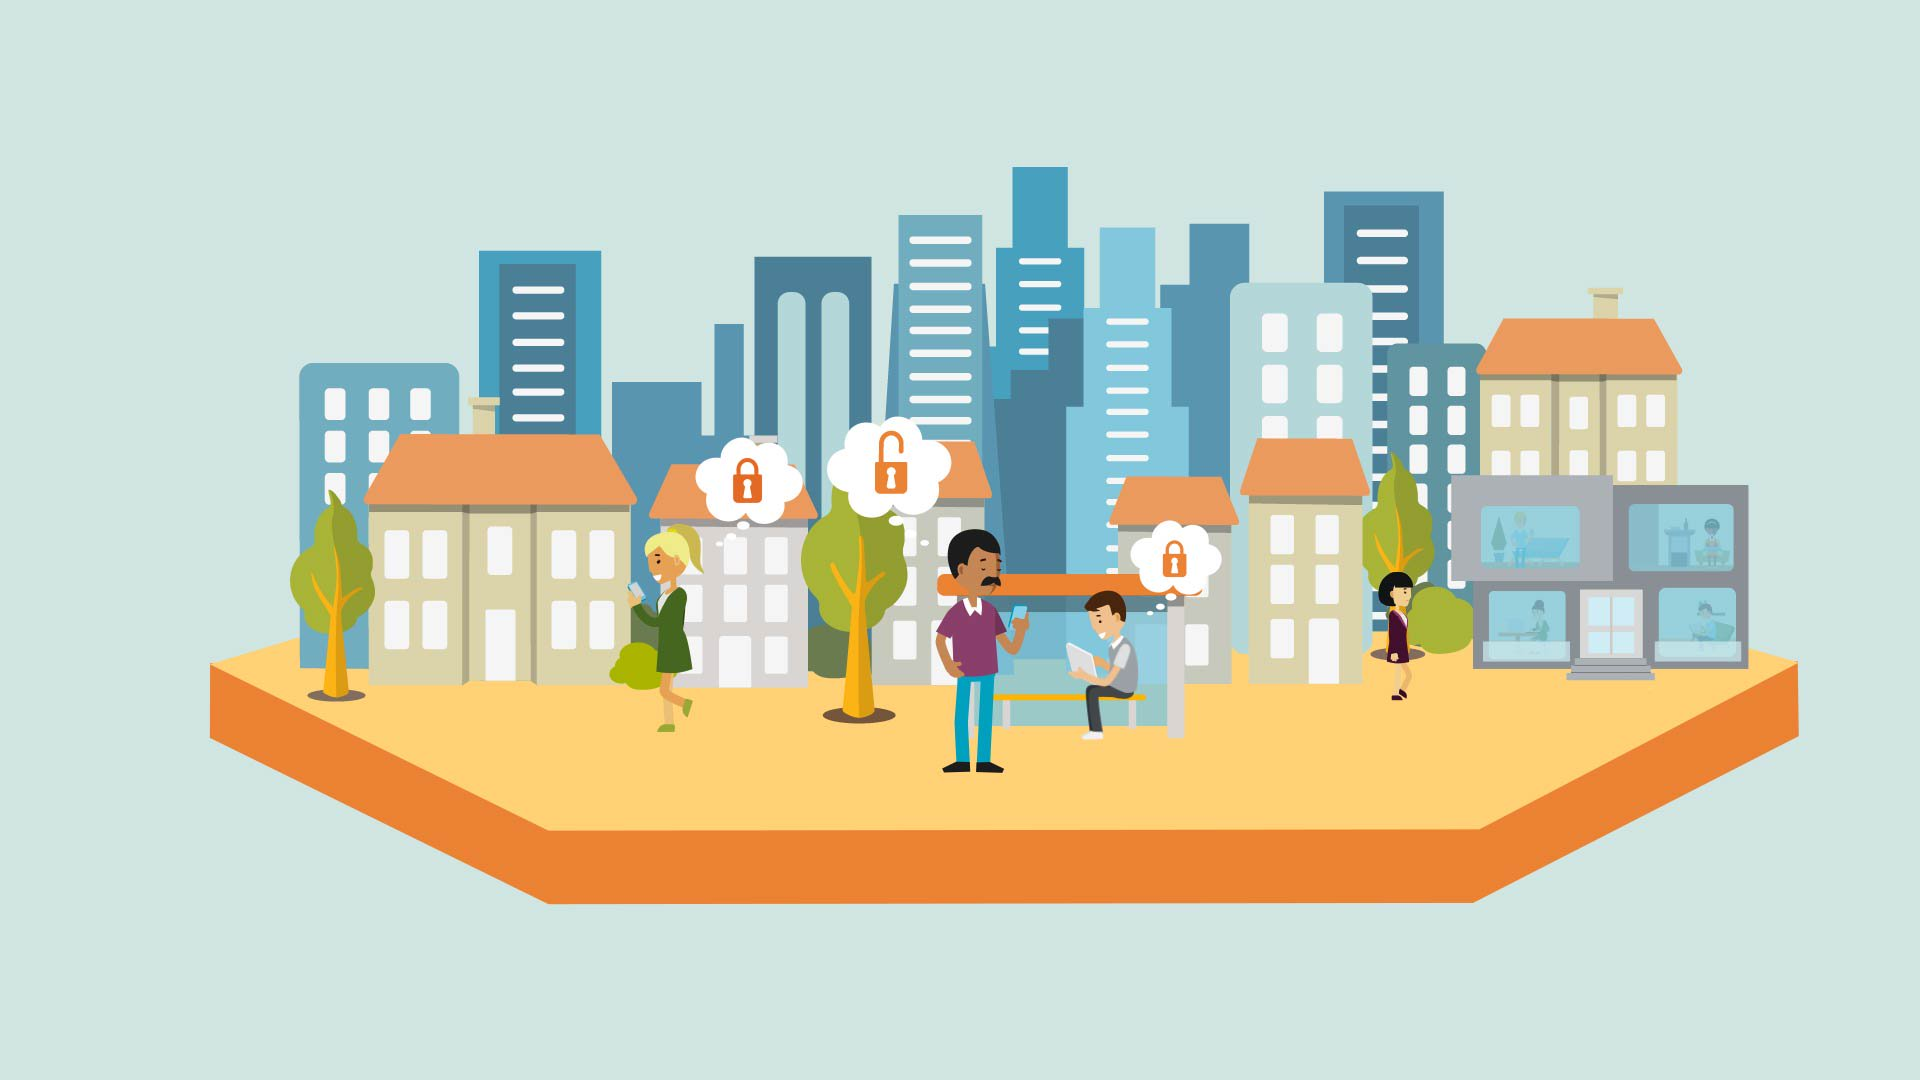 2D illustration of urban characters in city environment walking and waiting for a bus